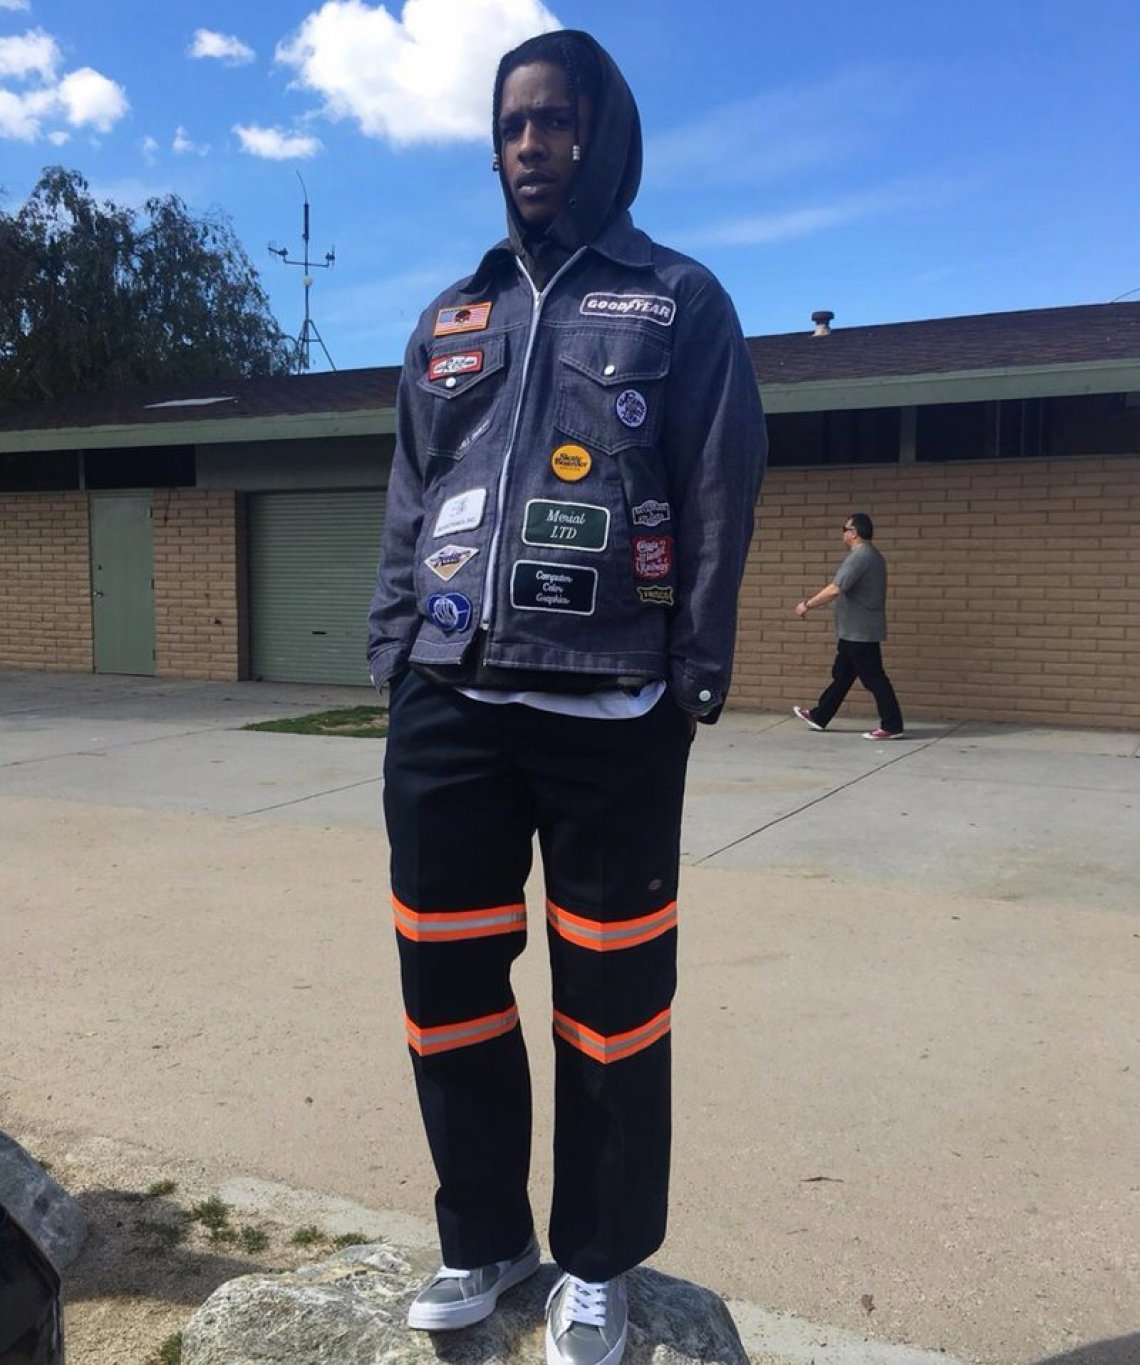 Asap Rocky in the Converse X Golf Le Fleur One Star